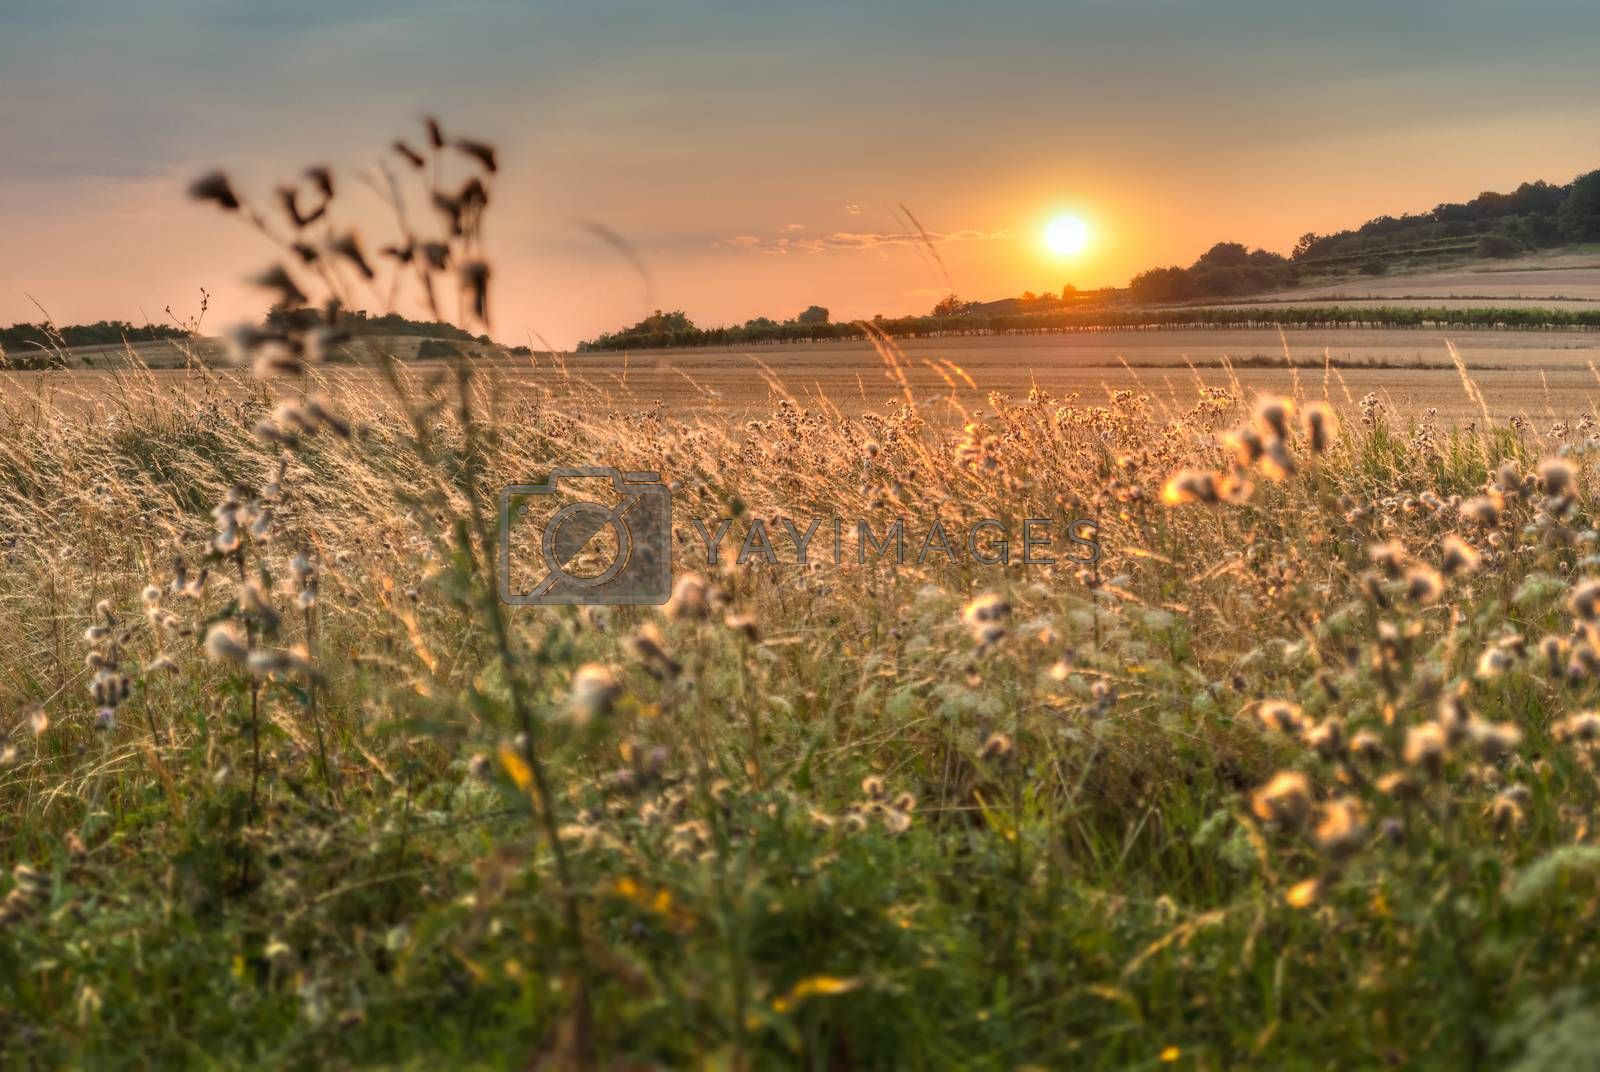 Royalty free image of atmosferic sunset over the field by Kayco